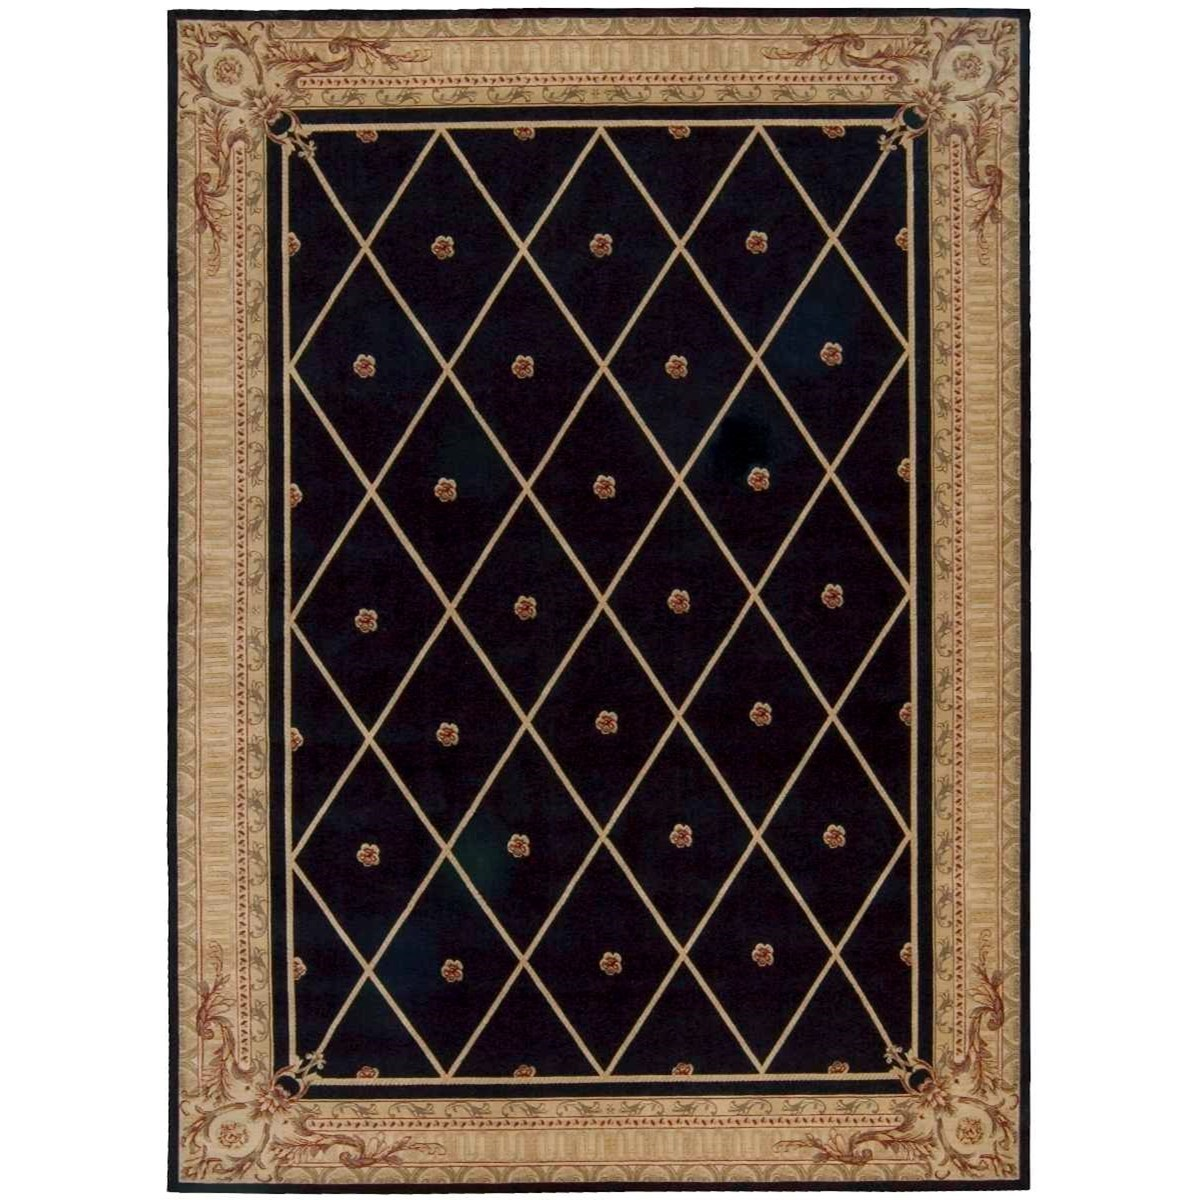 "Ashton House 9'6"" x 13' Black Rectangle Rug by Nourison at Home Collections Furniture"